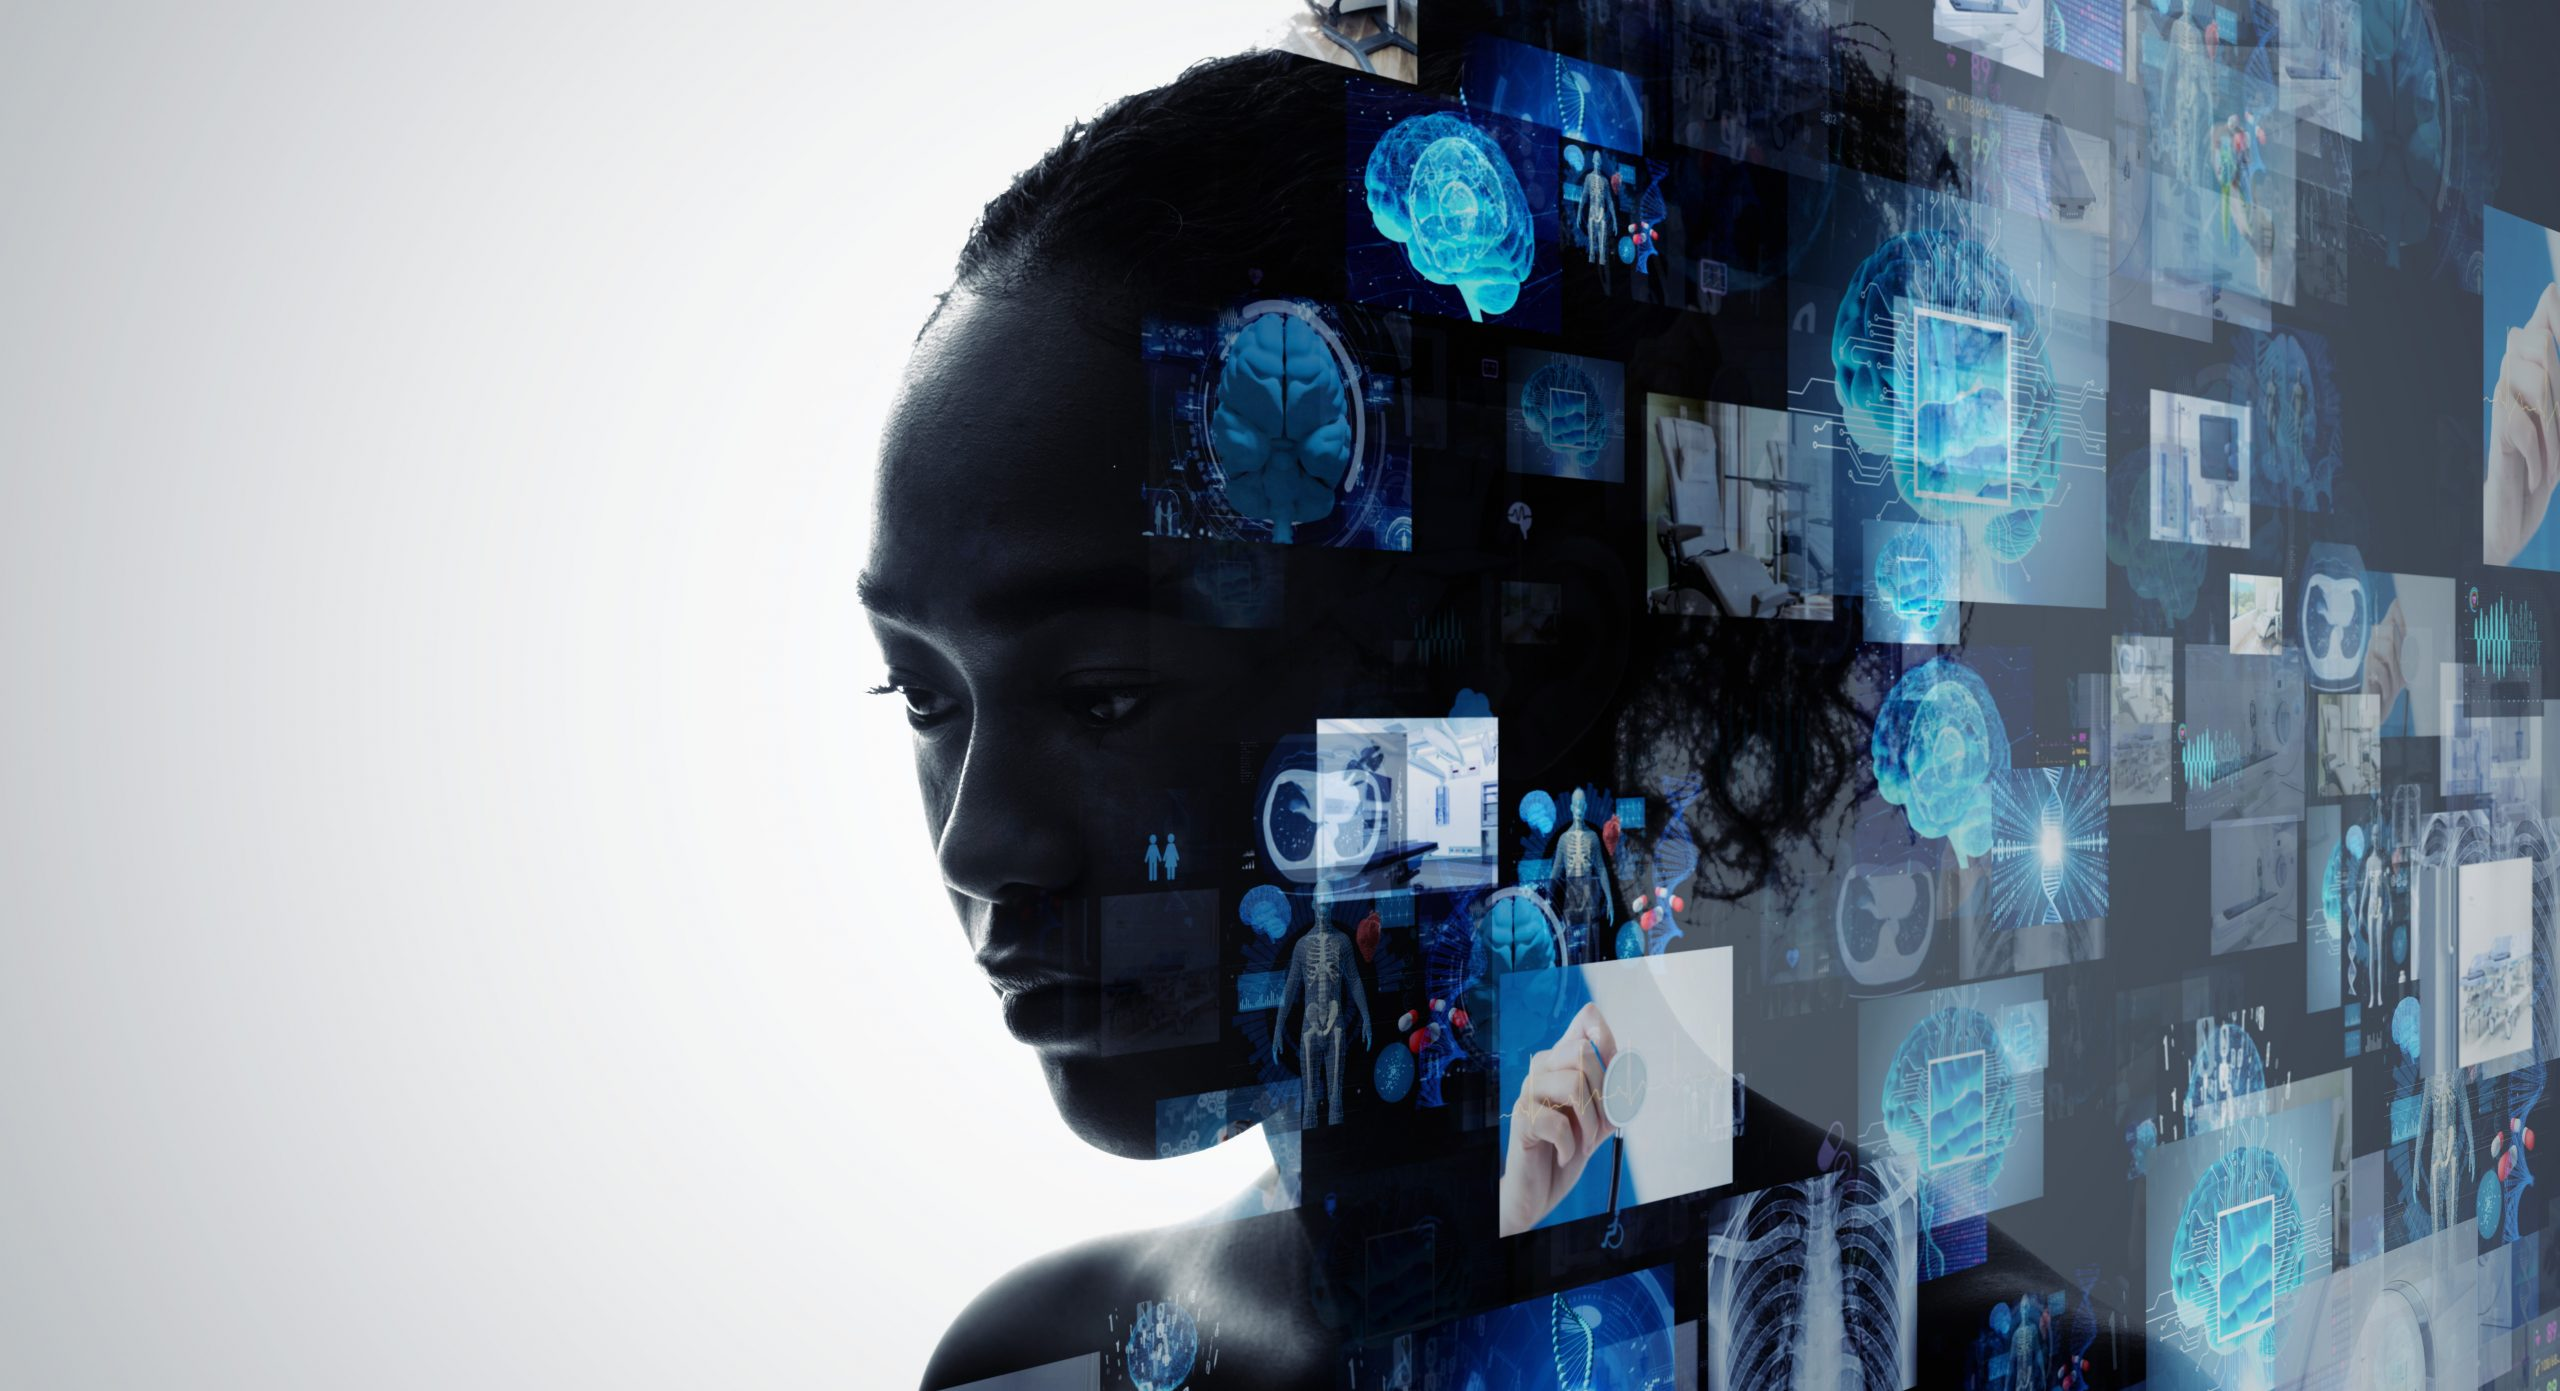 Concept illustration of medical images superimposed over the silhouetted profile of a Black woman